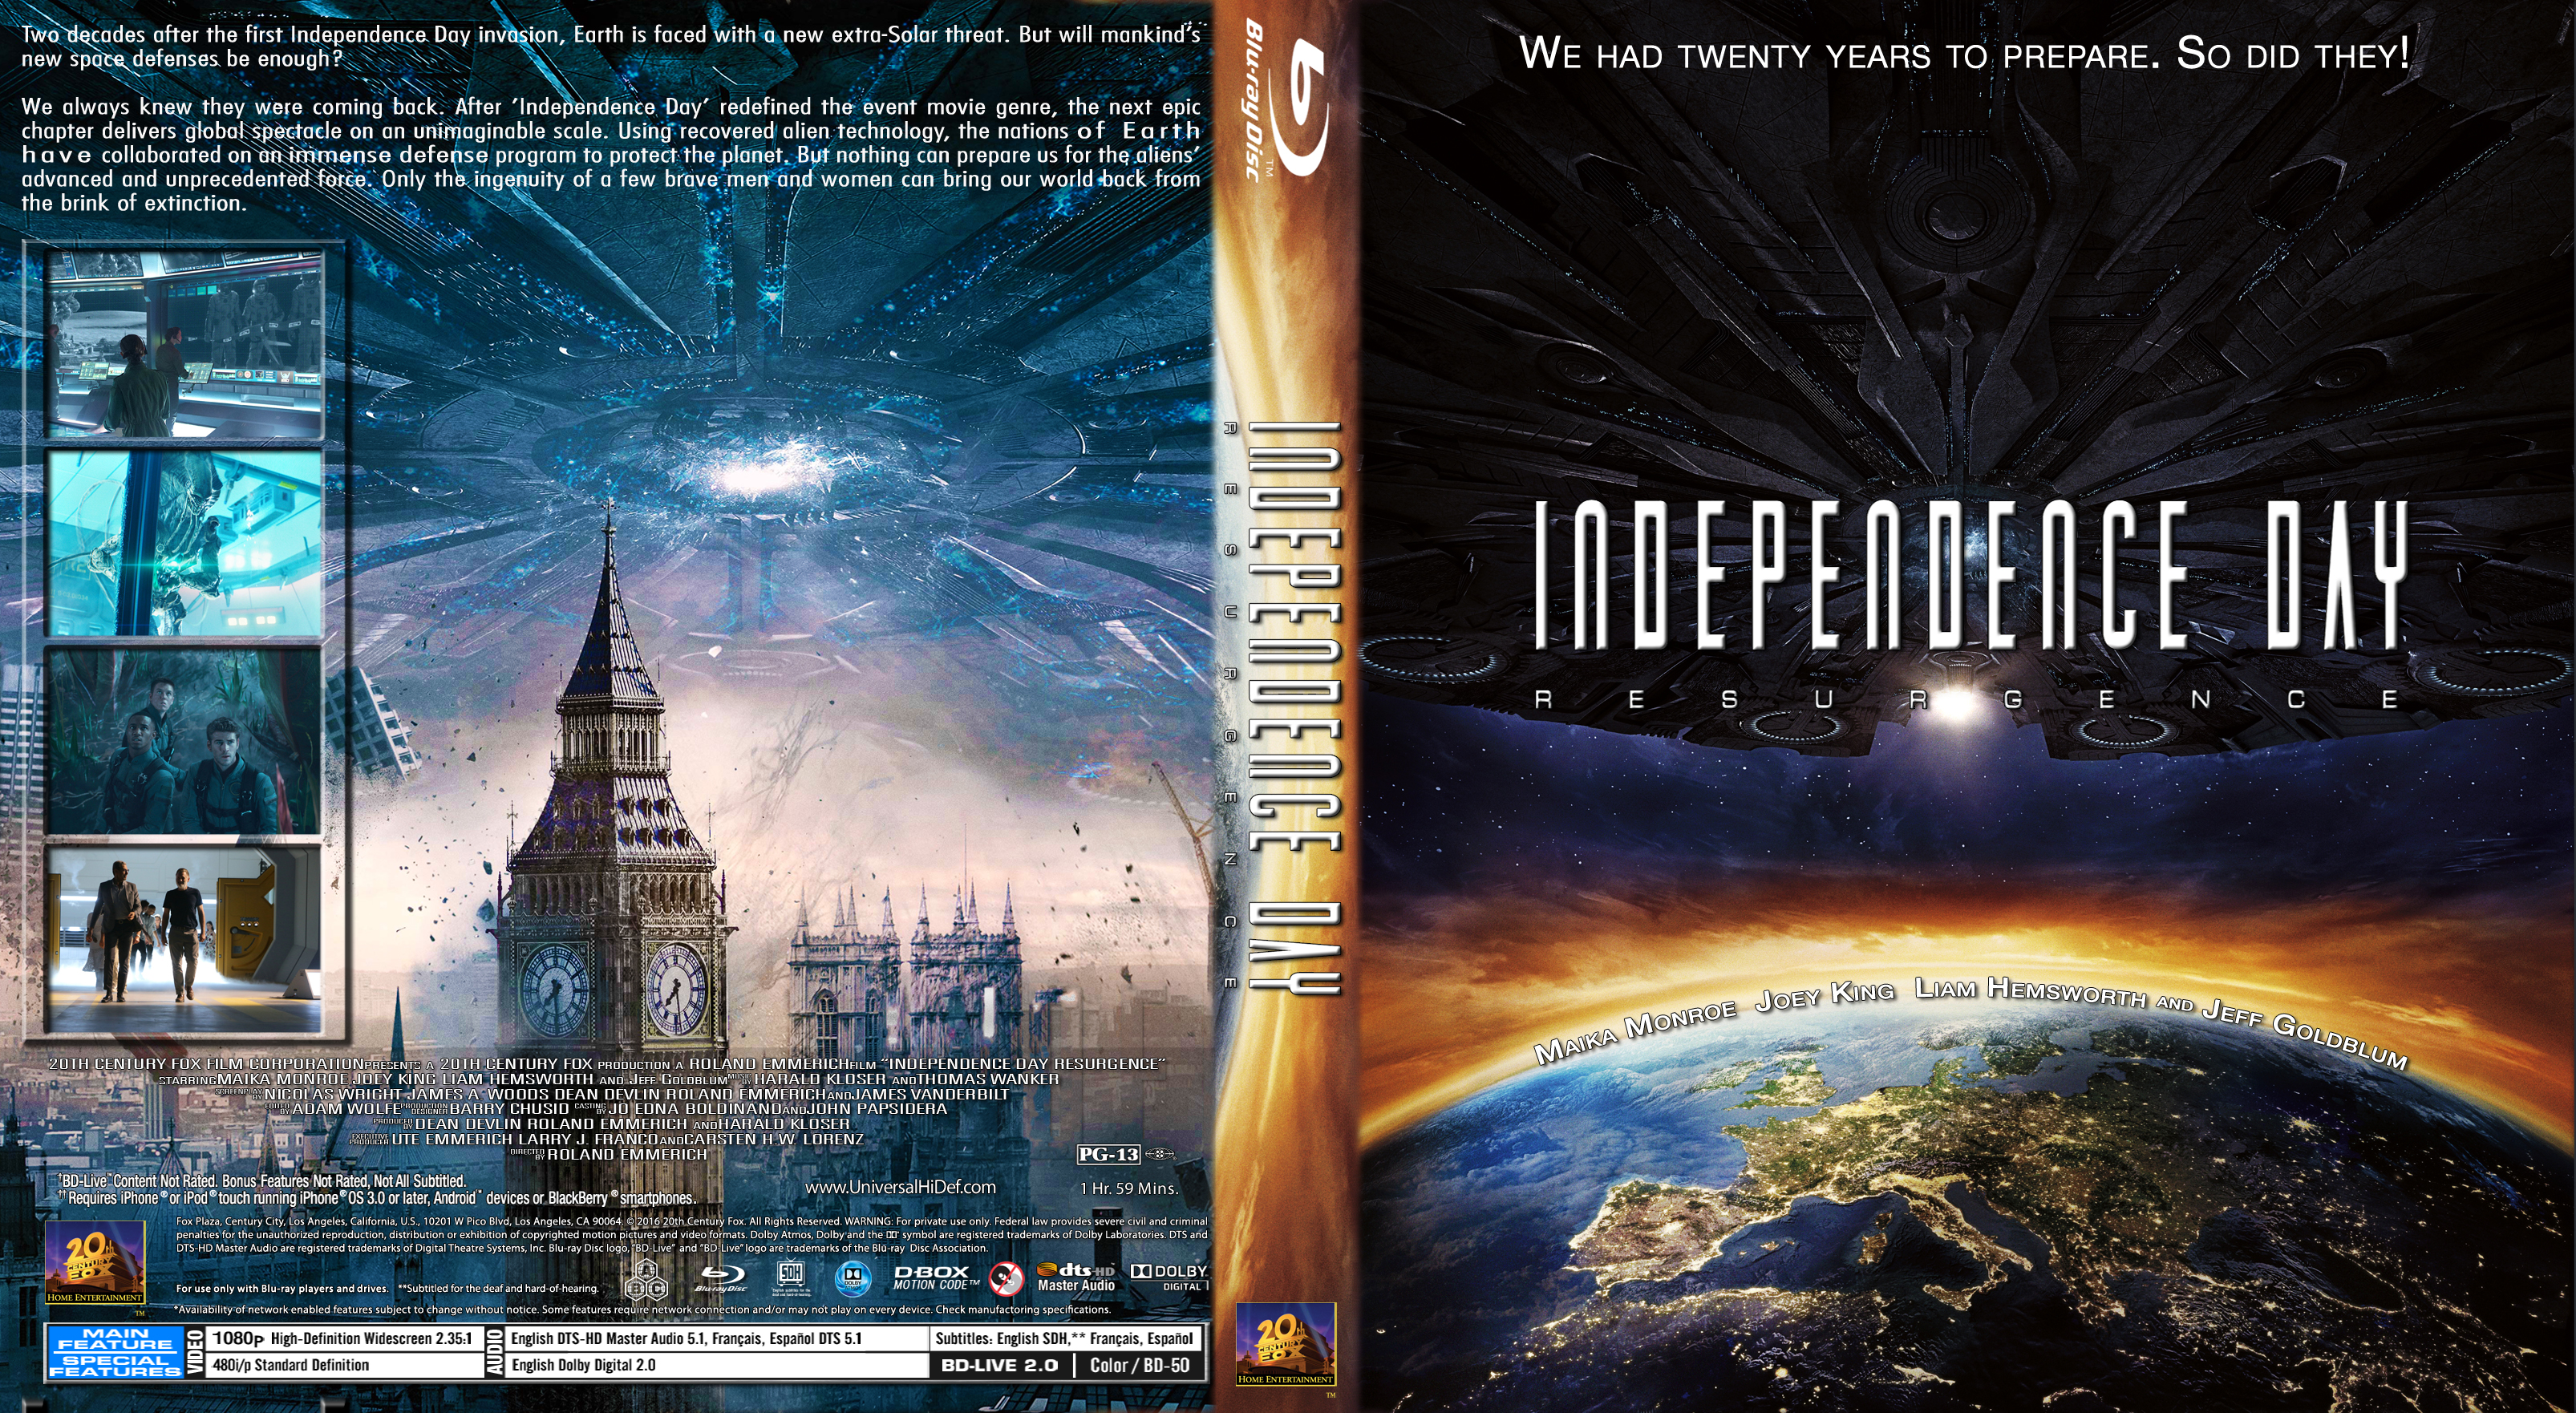 Independence Day Resurgence 2016 Front Dvd Covers Cover Century Over 500 000 Album Art Covers For Free